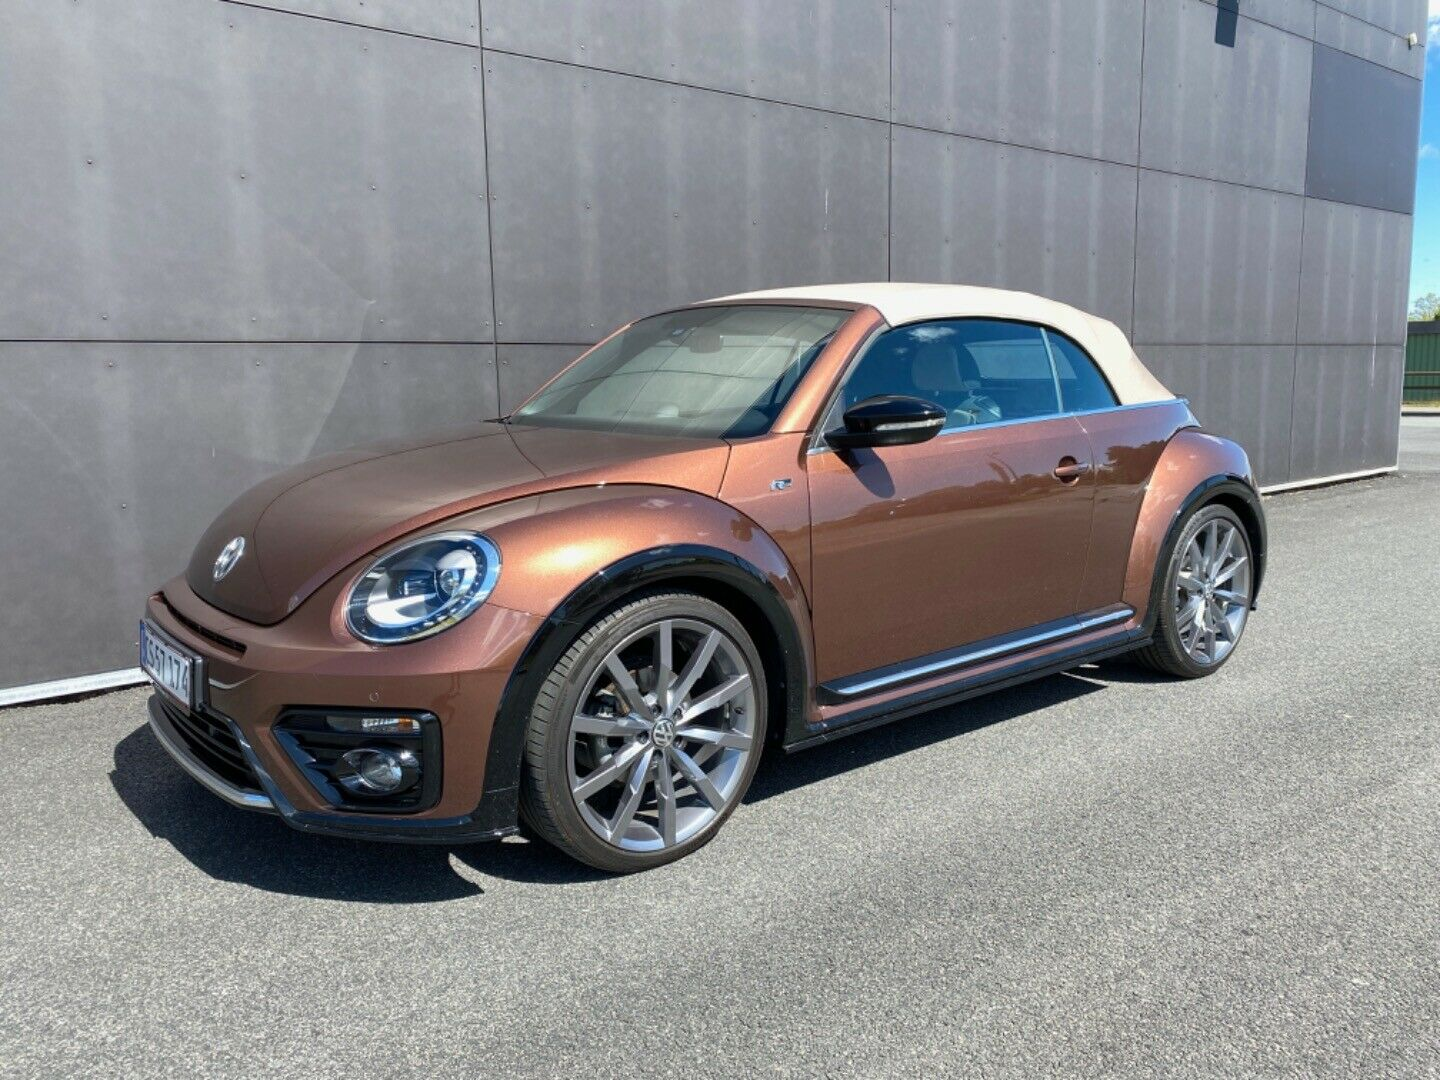 VW The Beetle 1,4 TSi 150 R-line Cabriolet DSG 2d